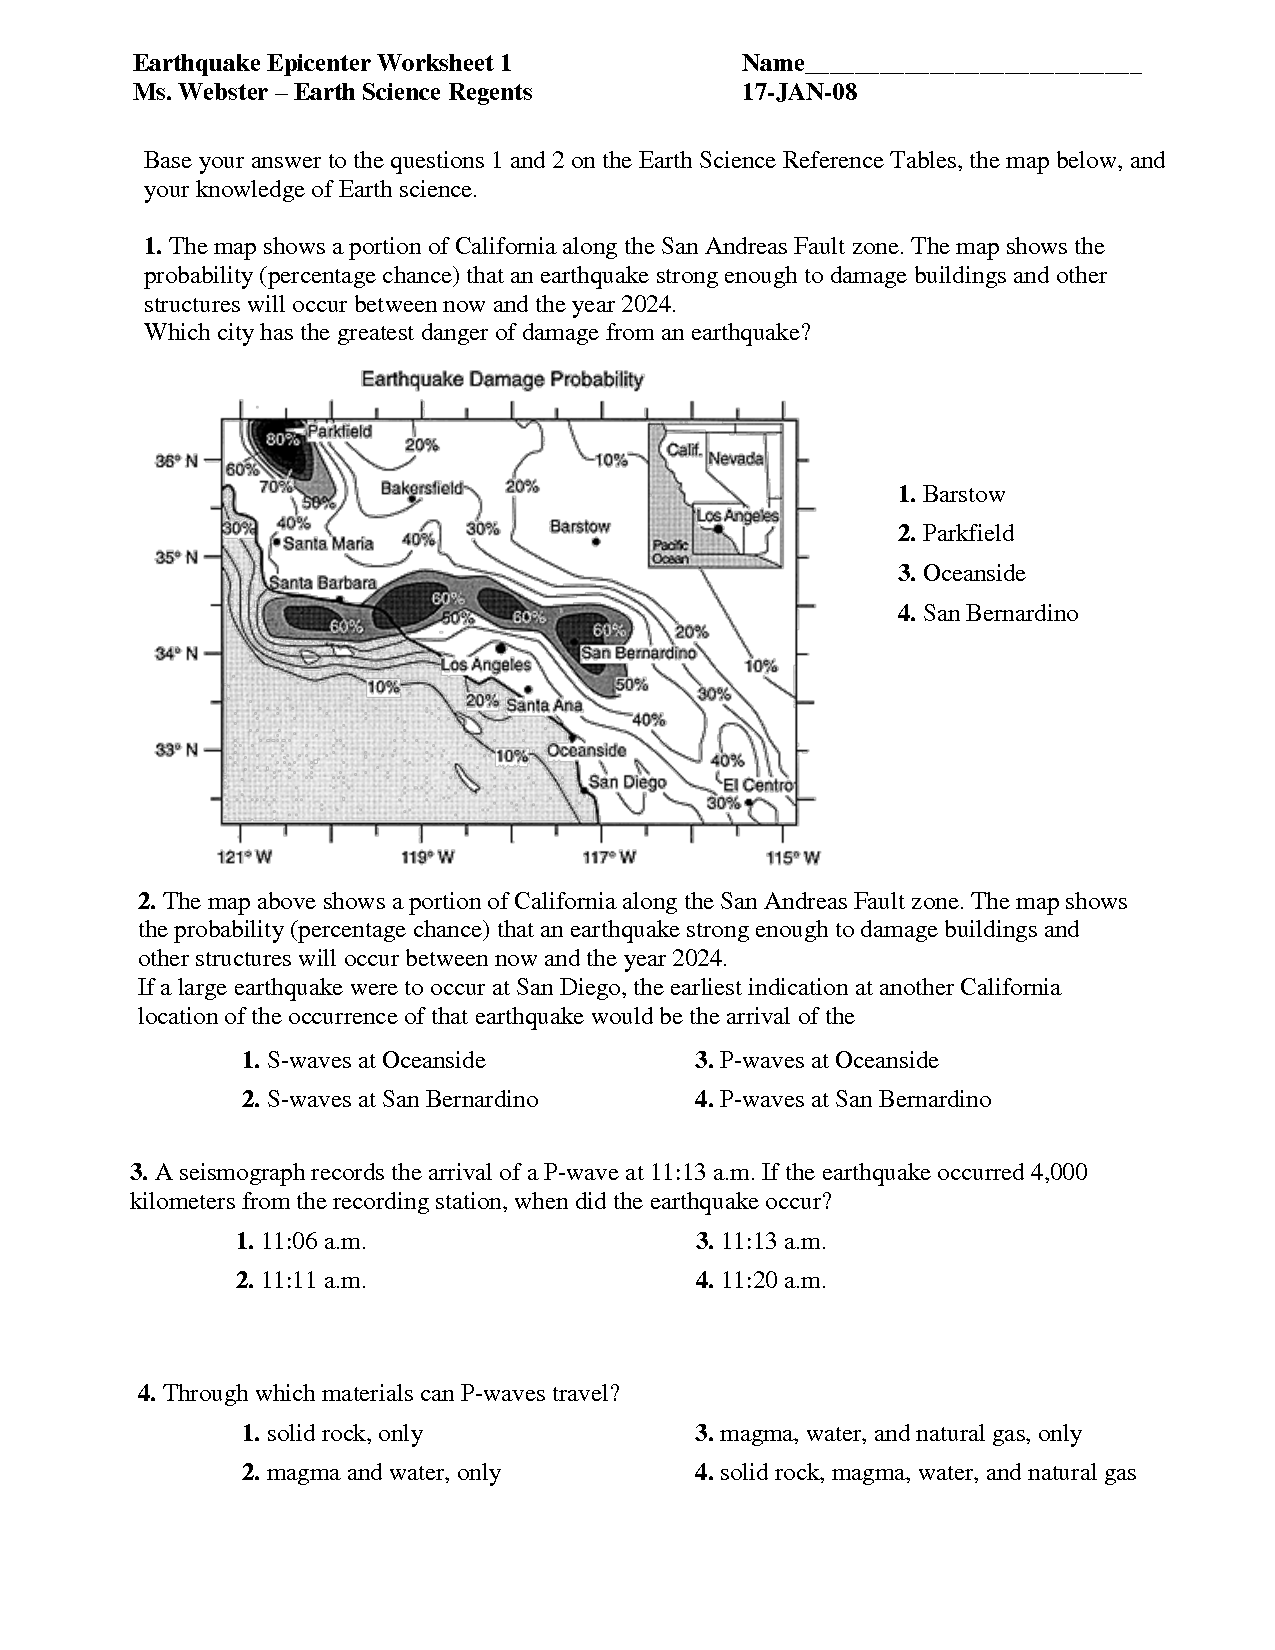 Earthquake Worksheets Middle School The Best Worksheets Image